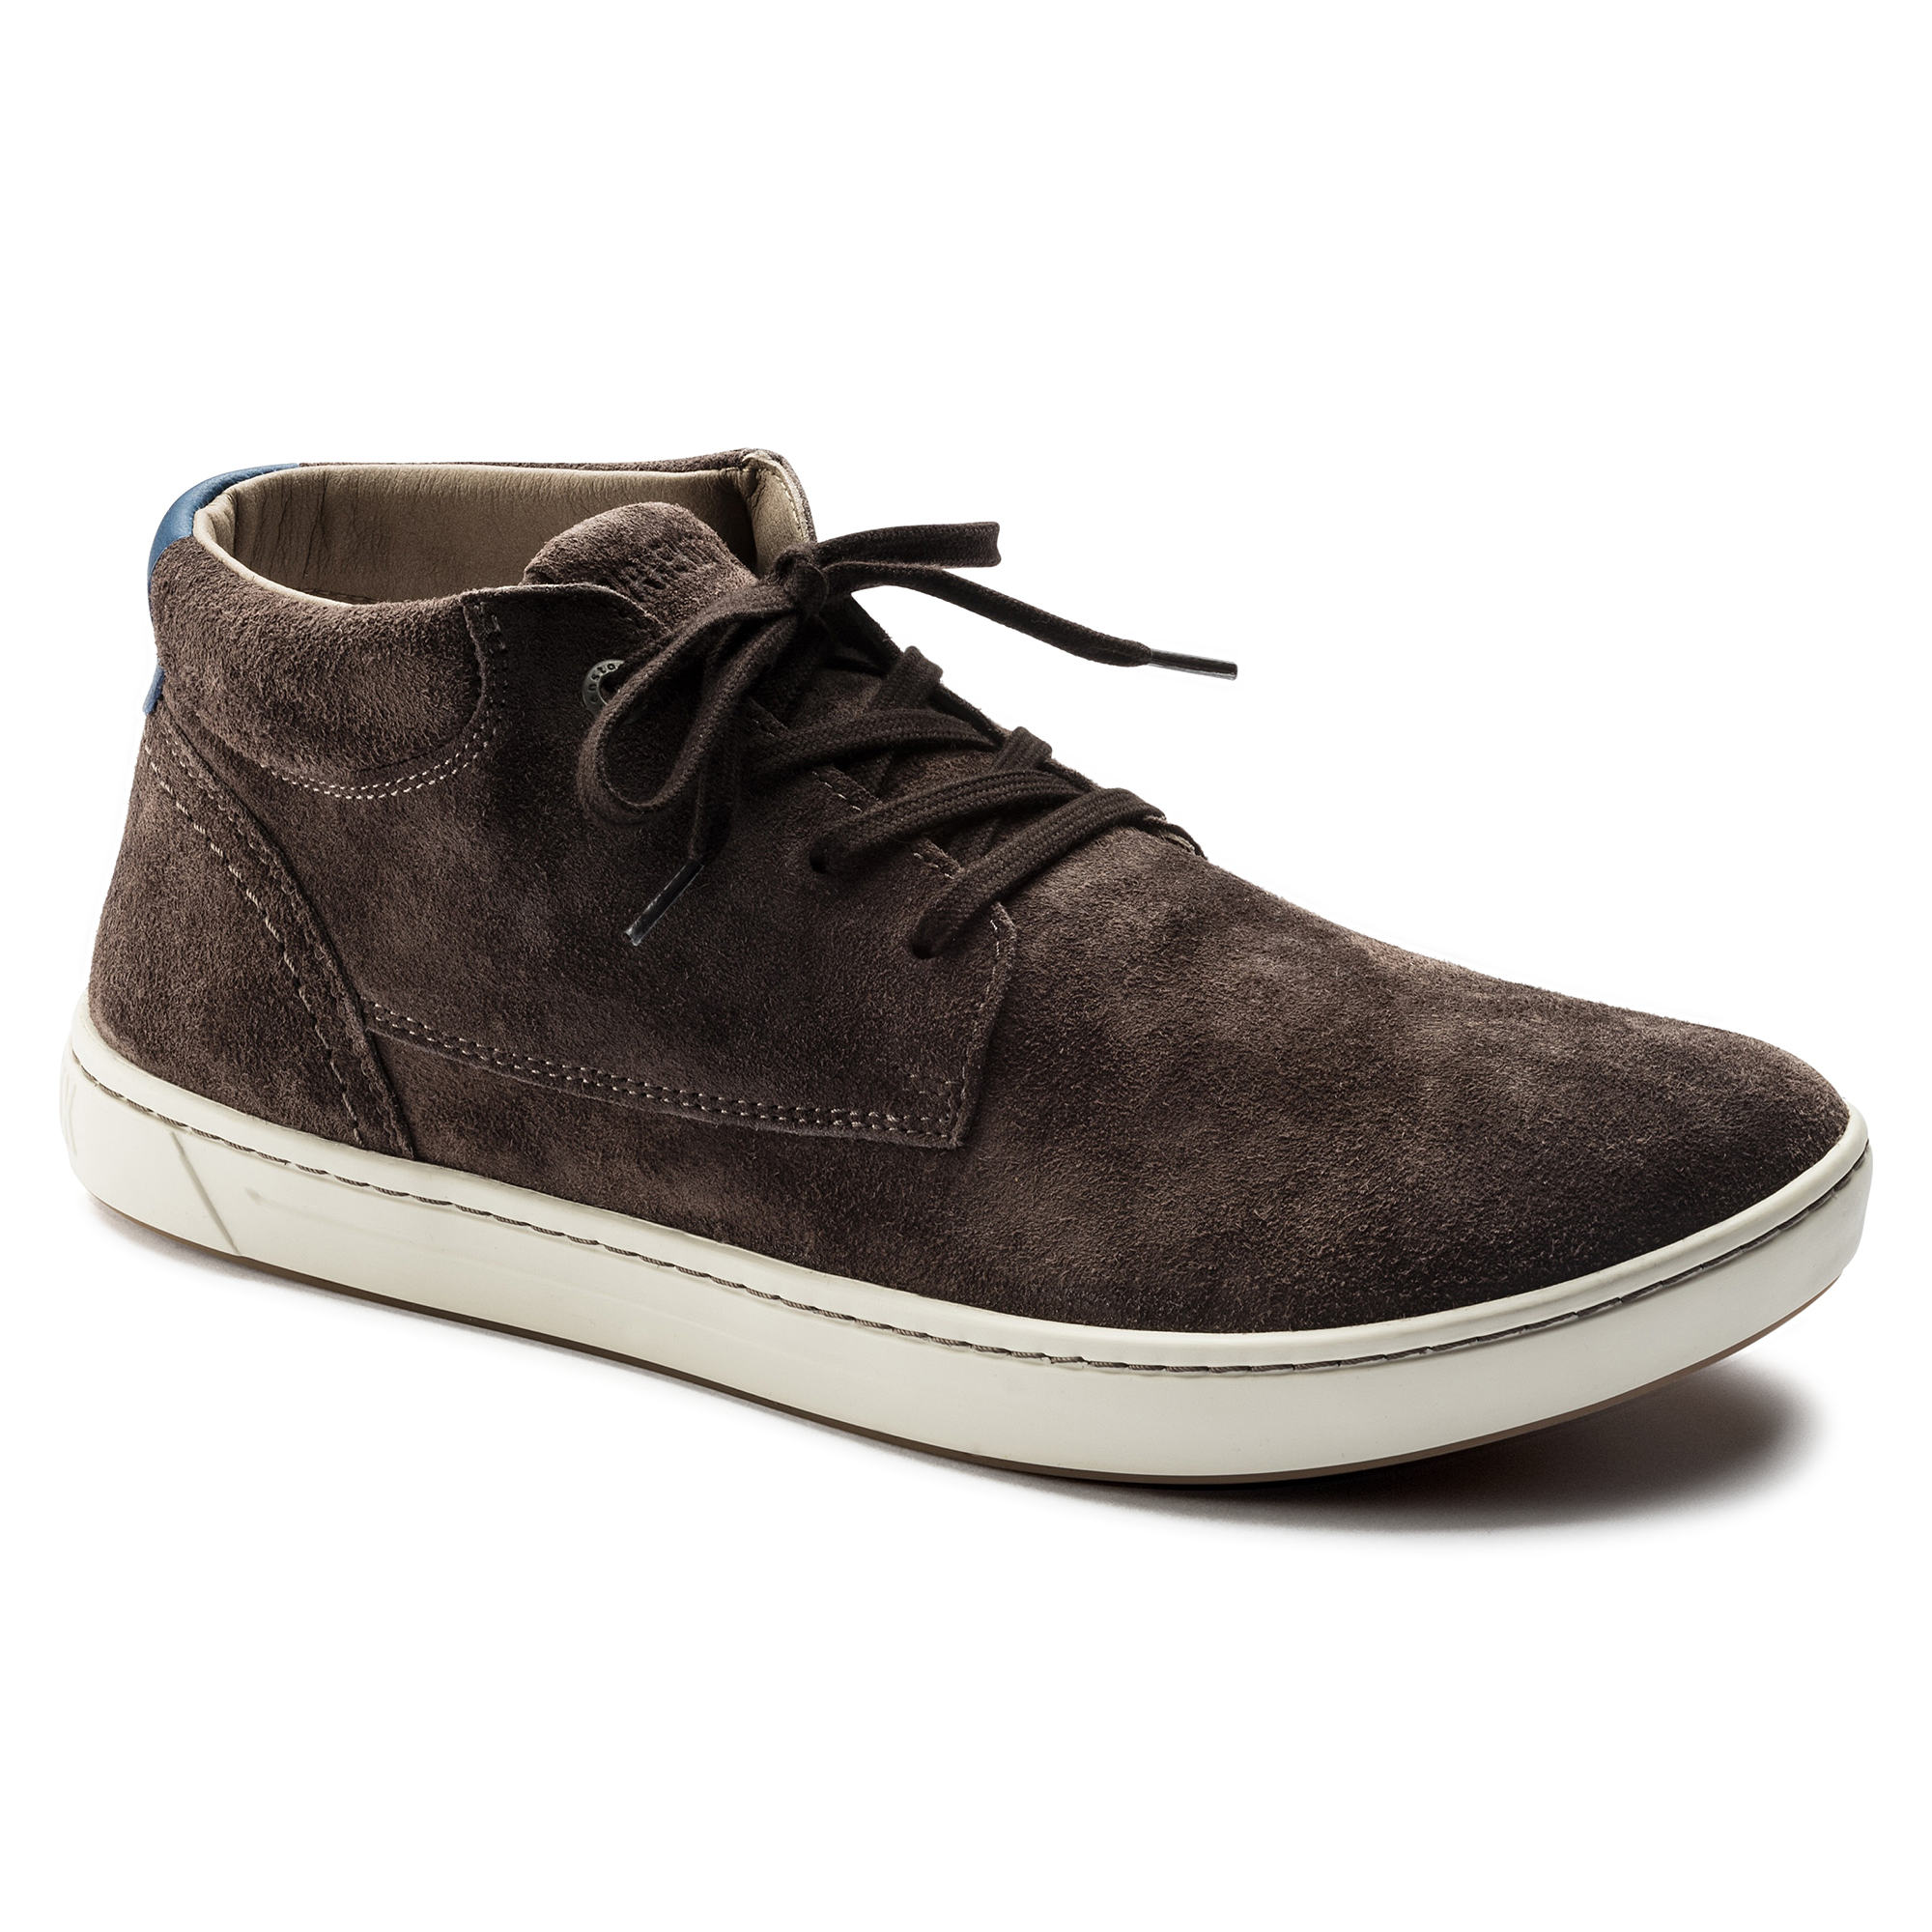 188077b2b17f Bandon Suede Leather Espresso ...